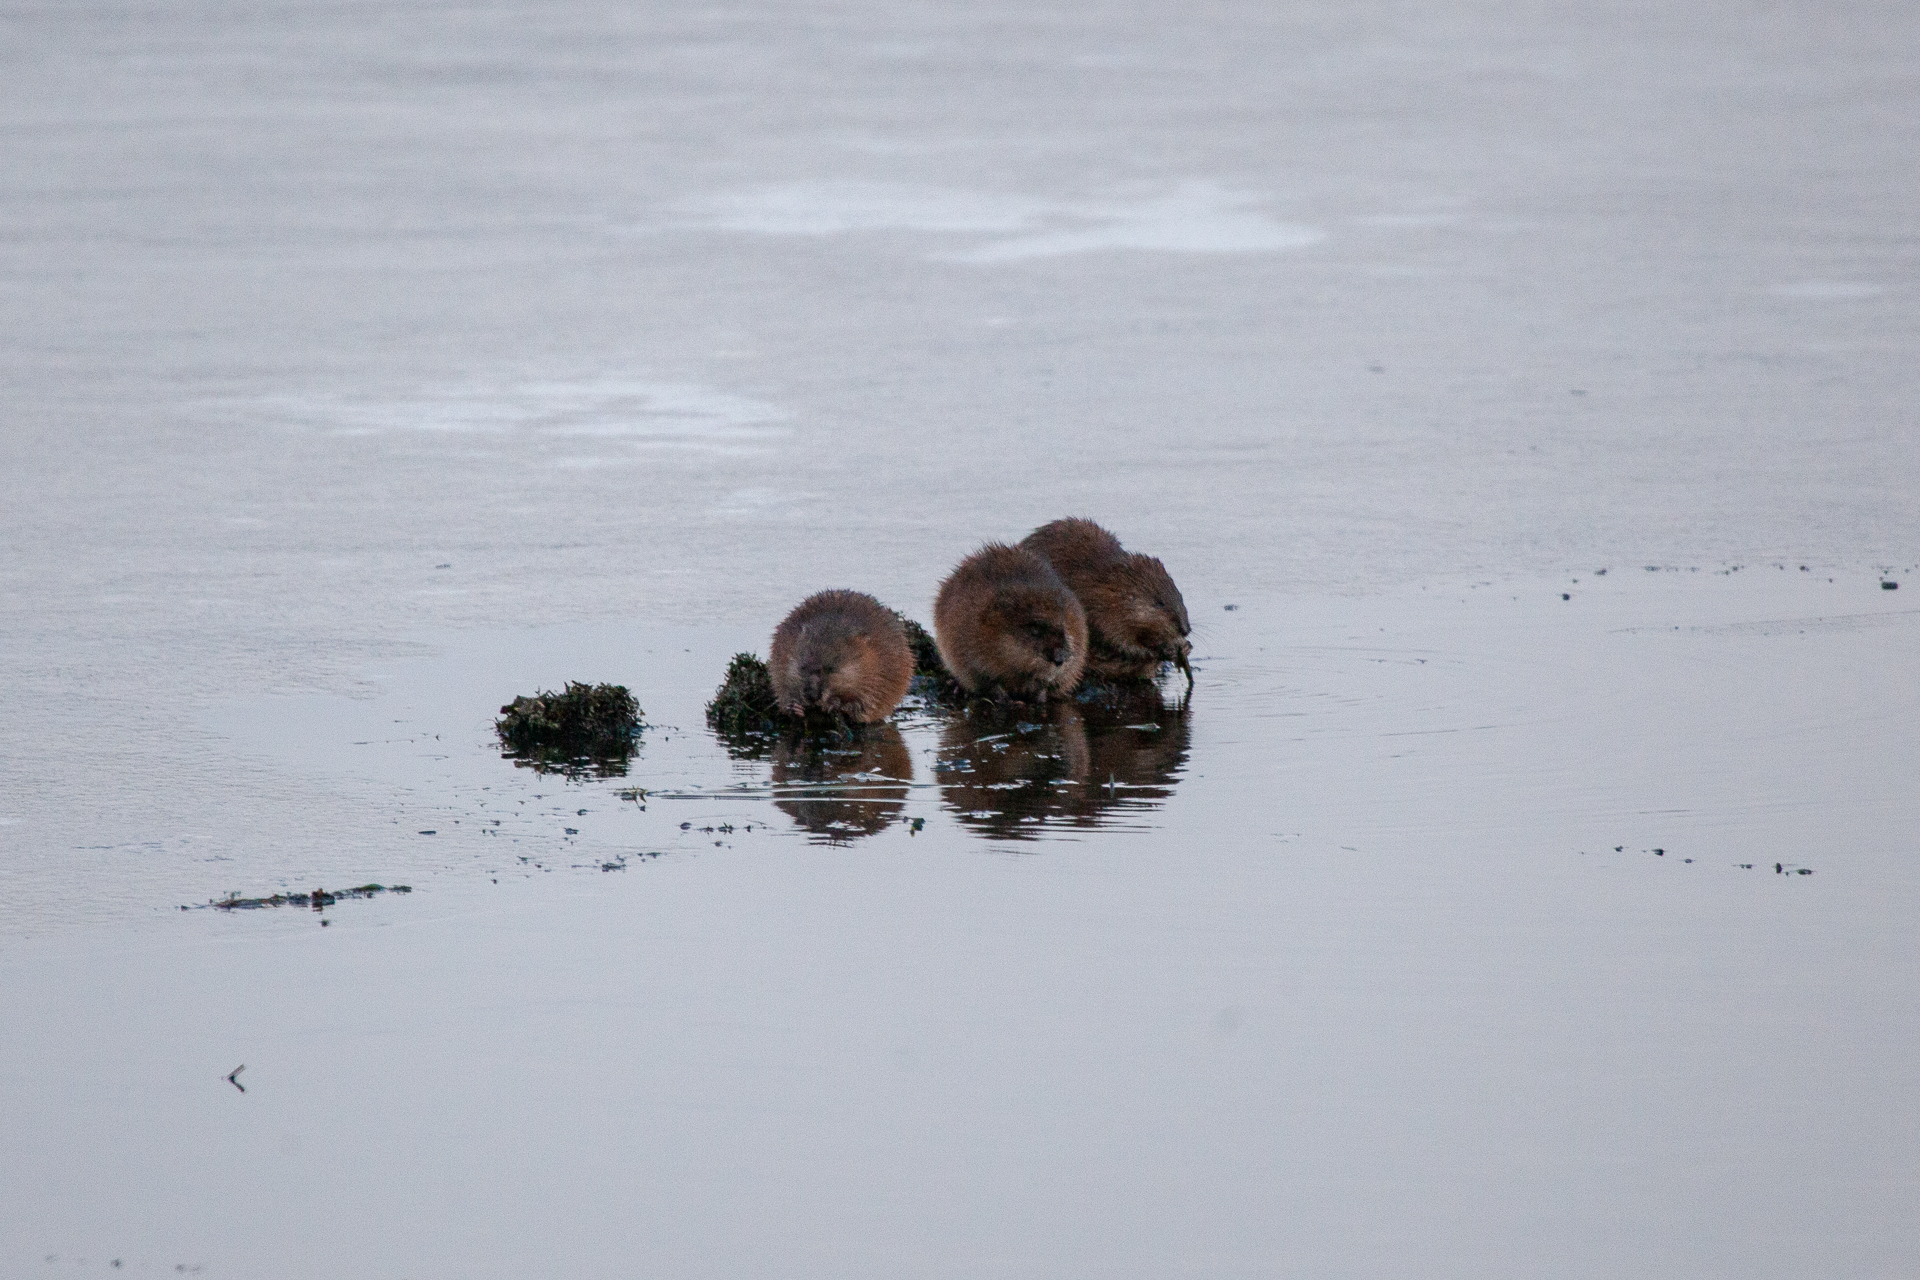 Muskrats on the ice